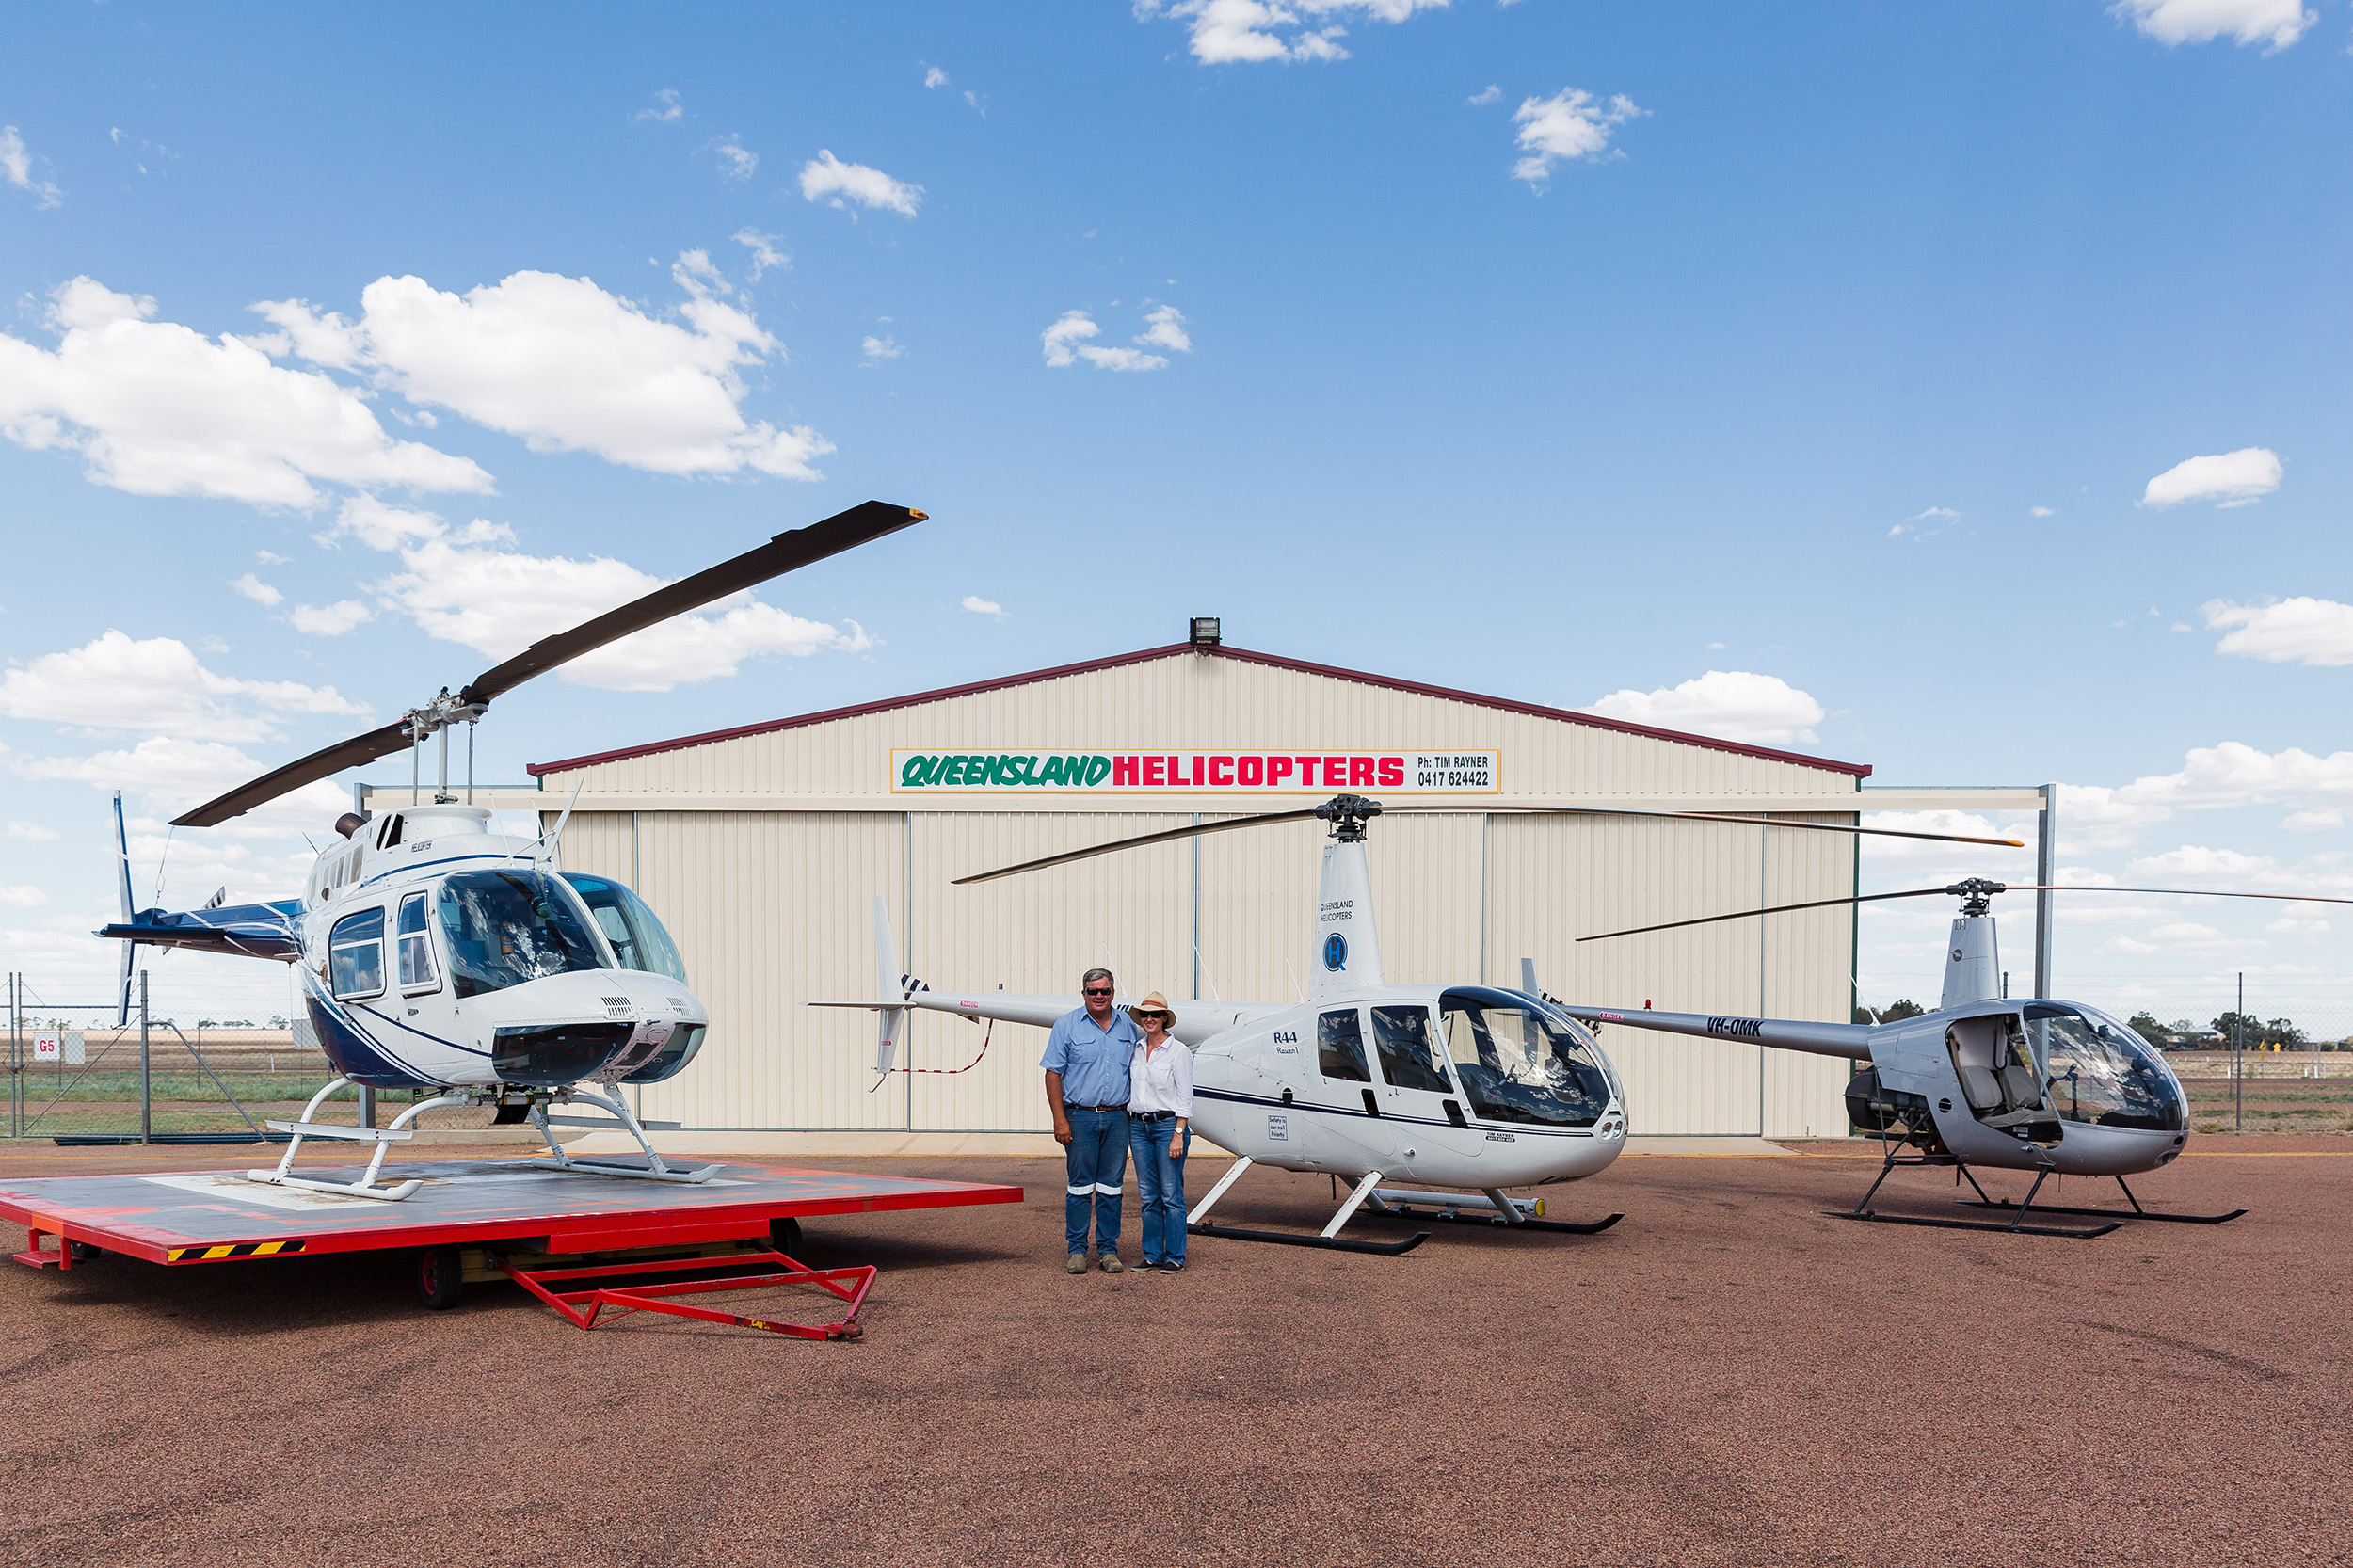 Queensland Helicopters - fleet and history